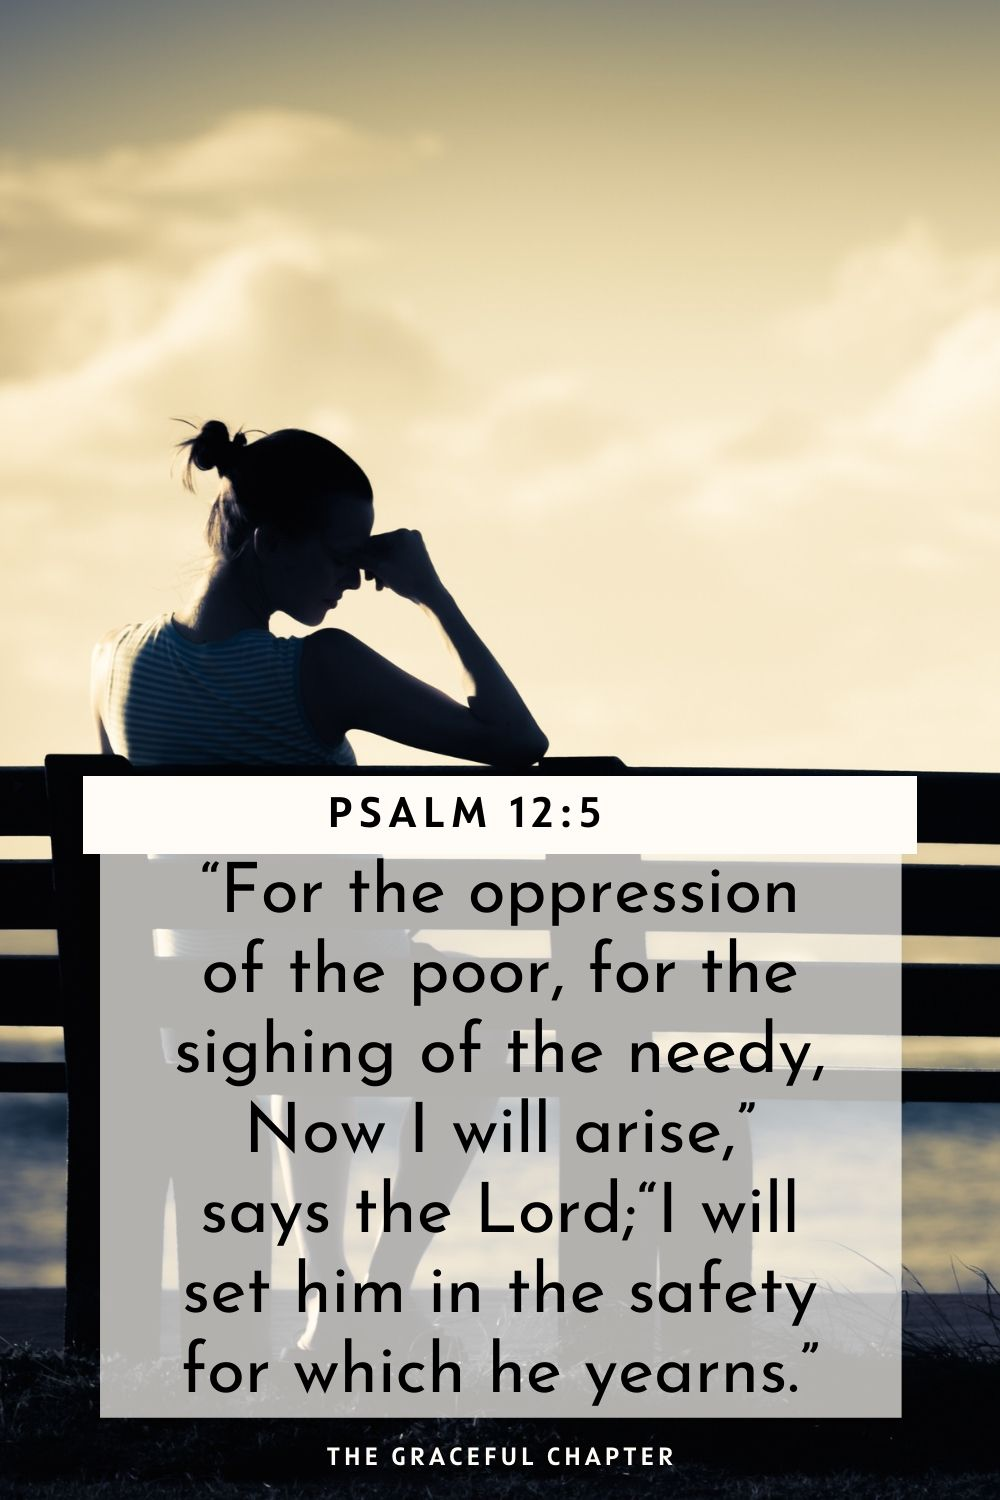 """For the oppression of the poor, for the sighing of the needy, Now I will arise,"" says the Lord; ""I will set him in the safety for which he yearns."" Psalm 12:5"